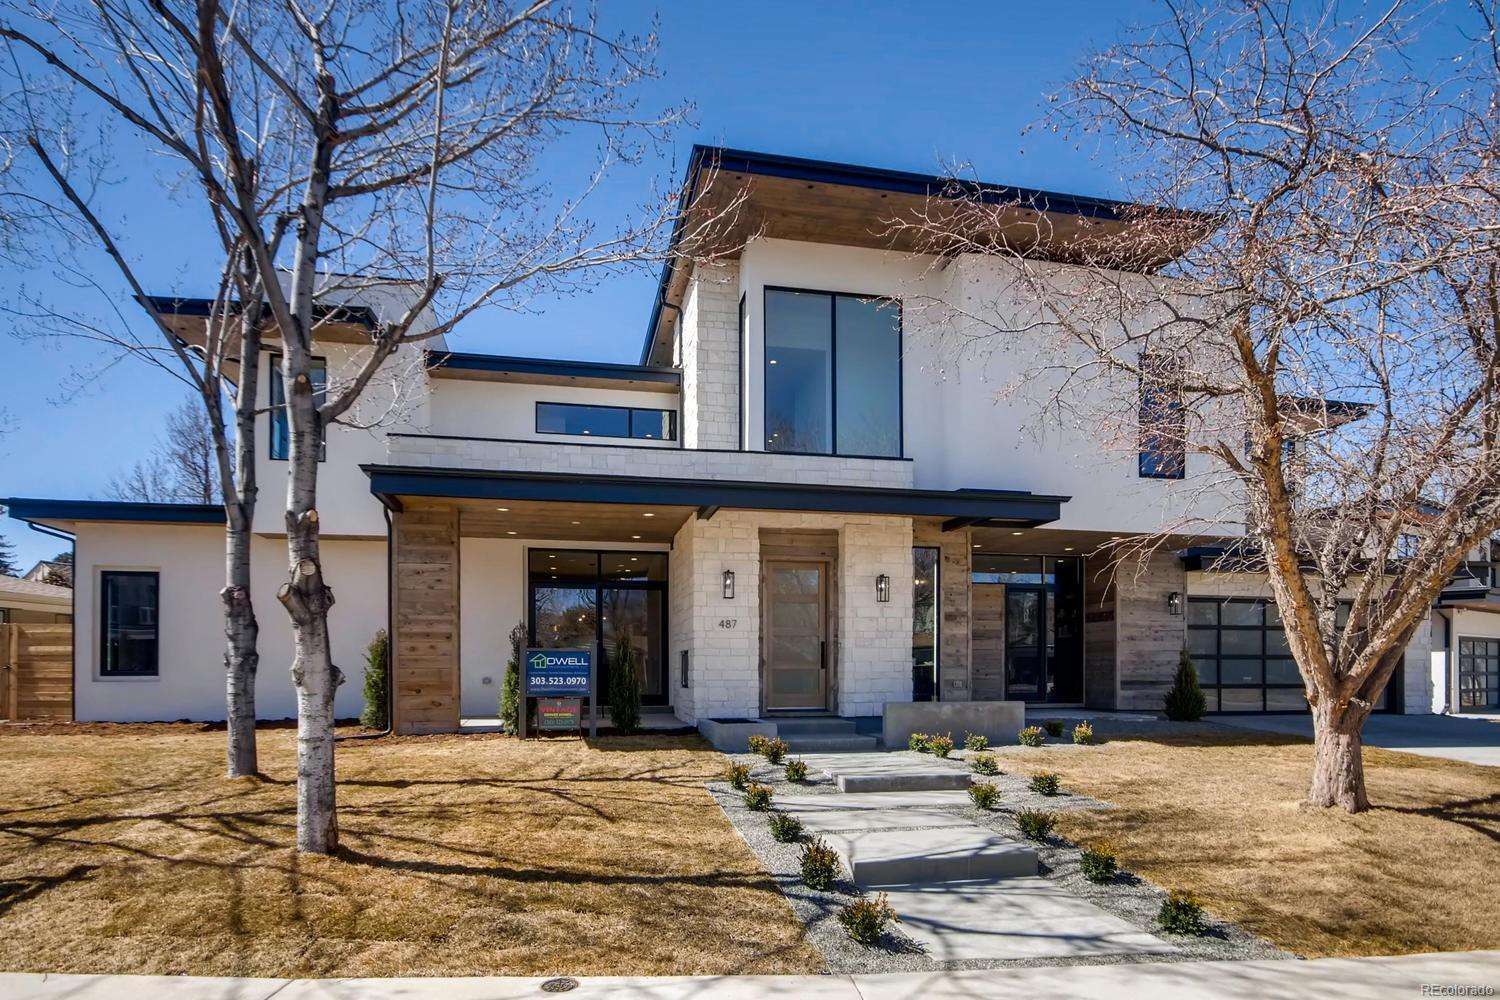 2018 Award Winning Dwell Development & Godden Sudik Architects, joined forces for this contemporary Belcaro custom home. Located on a 10,660 lot in heart of classic Stokes/Belcaro neighborhood. Outdoor living thru a 12ft. Nano door that opens to a perfectly configured space w/gas fireplace. Be WOWED when you enter..22ft. ceilings on main floor w/stunning floating-thickened tread contemporary staircase. Chef's Kitchen w/high-end Thermador app, Calcutta Gold Quartz counters & custom cabs. Main floor guest suite w/private bath. Large master suite w/sitting area, private balcony & 5-piece bath w/Carrara marble, & oversized shower. 3 add'l bedrms on 2nd floor each w/full bath. Oversized 3 garage, smooth walls, state-of-the art Dolby surround sound system & alarm, glass wine cellar, high efficiency water heater. Many options for the add'l finished bsmt area: bdrm, play room, office, Exercise Room? Ultimate urban retreat for the discriminating buyer! Minutes away from Cherry Creek & Wash Park